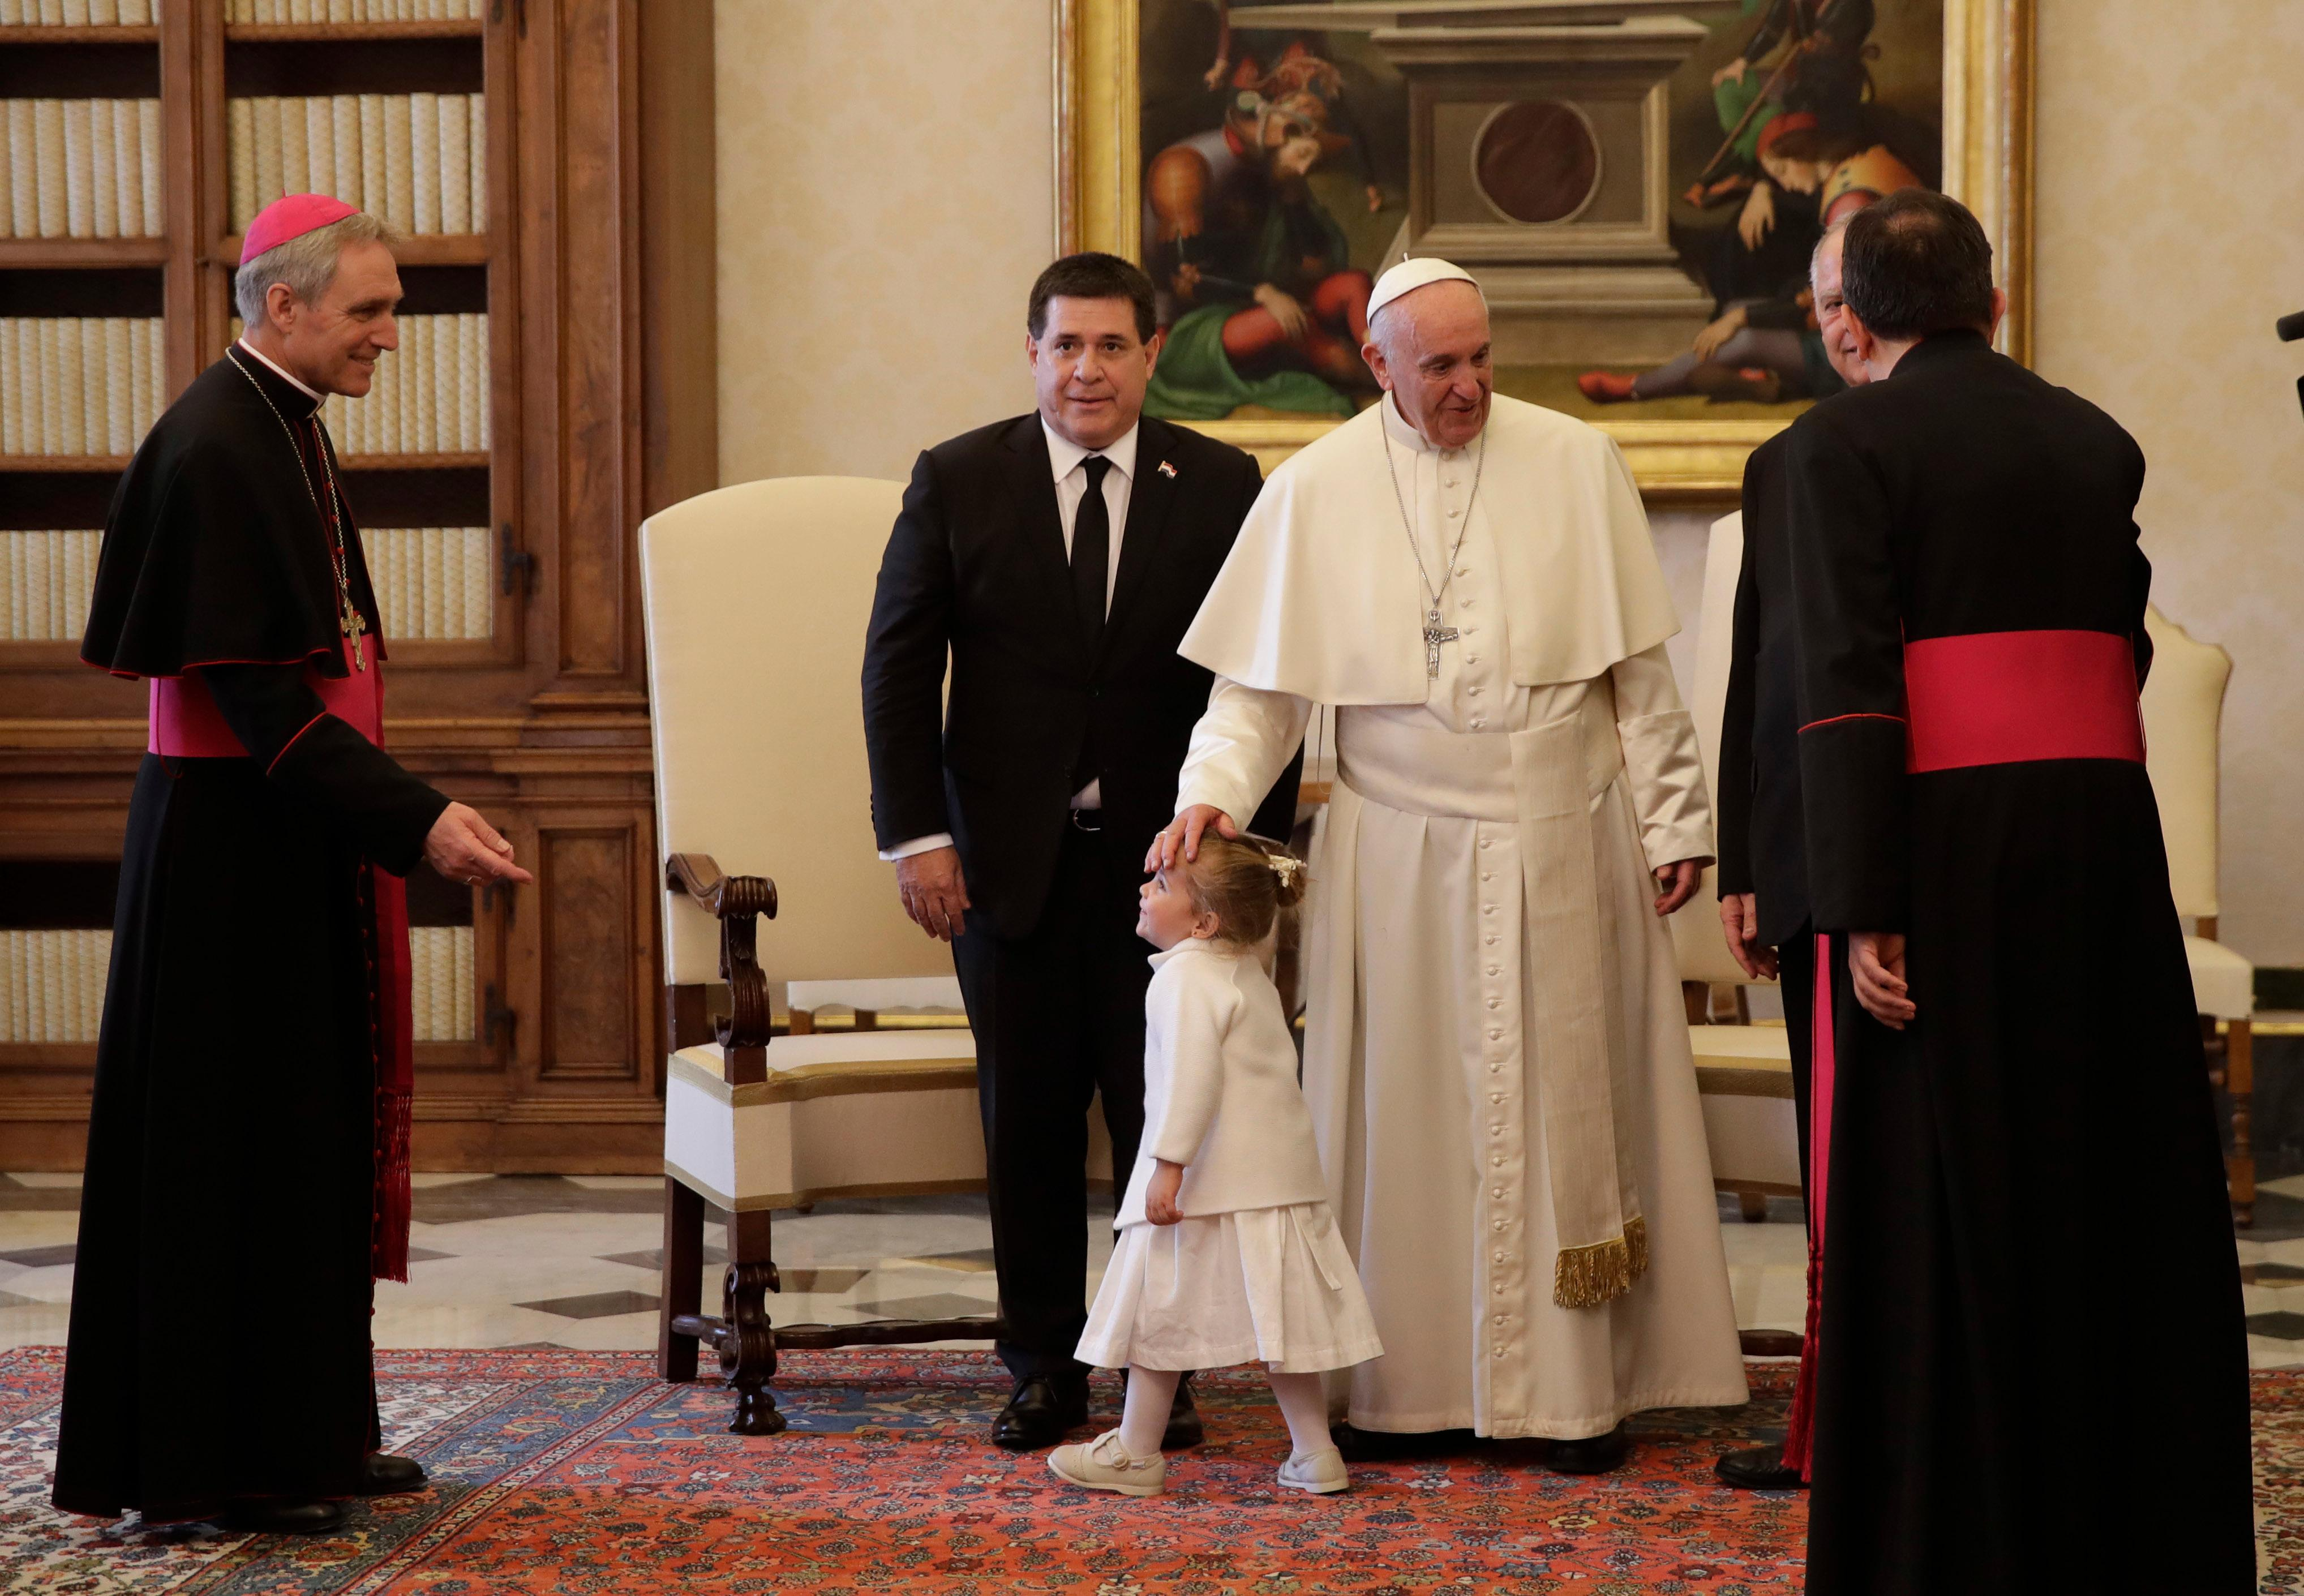 Pope Francis meets Paraguay's President Horacio Cartes and his grandniece Sofia during a private audience at the Vatican Thursday, Nov. 9, 2017. (AP Photo/Alessandra Tarantino)